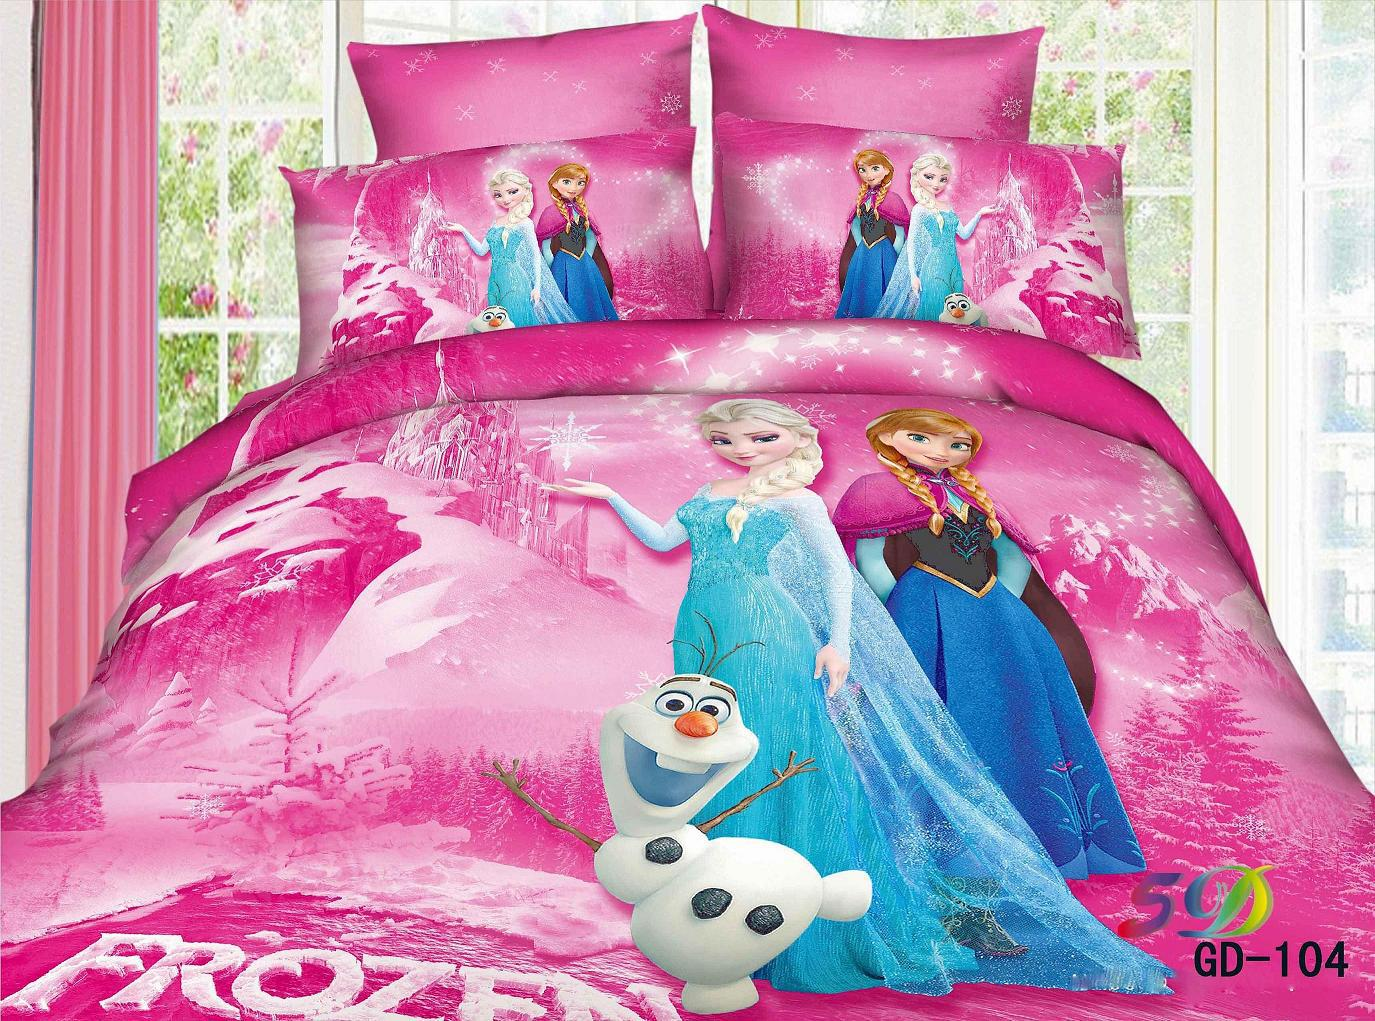 3d Frozen Anna Elsa Snowman Bedding Sets Queen King Size 100% Cotton Fabric  Quilt Duvet Cover Flat Bed Sheet Pillow Cases Cheap Duvet Covers Full ...